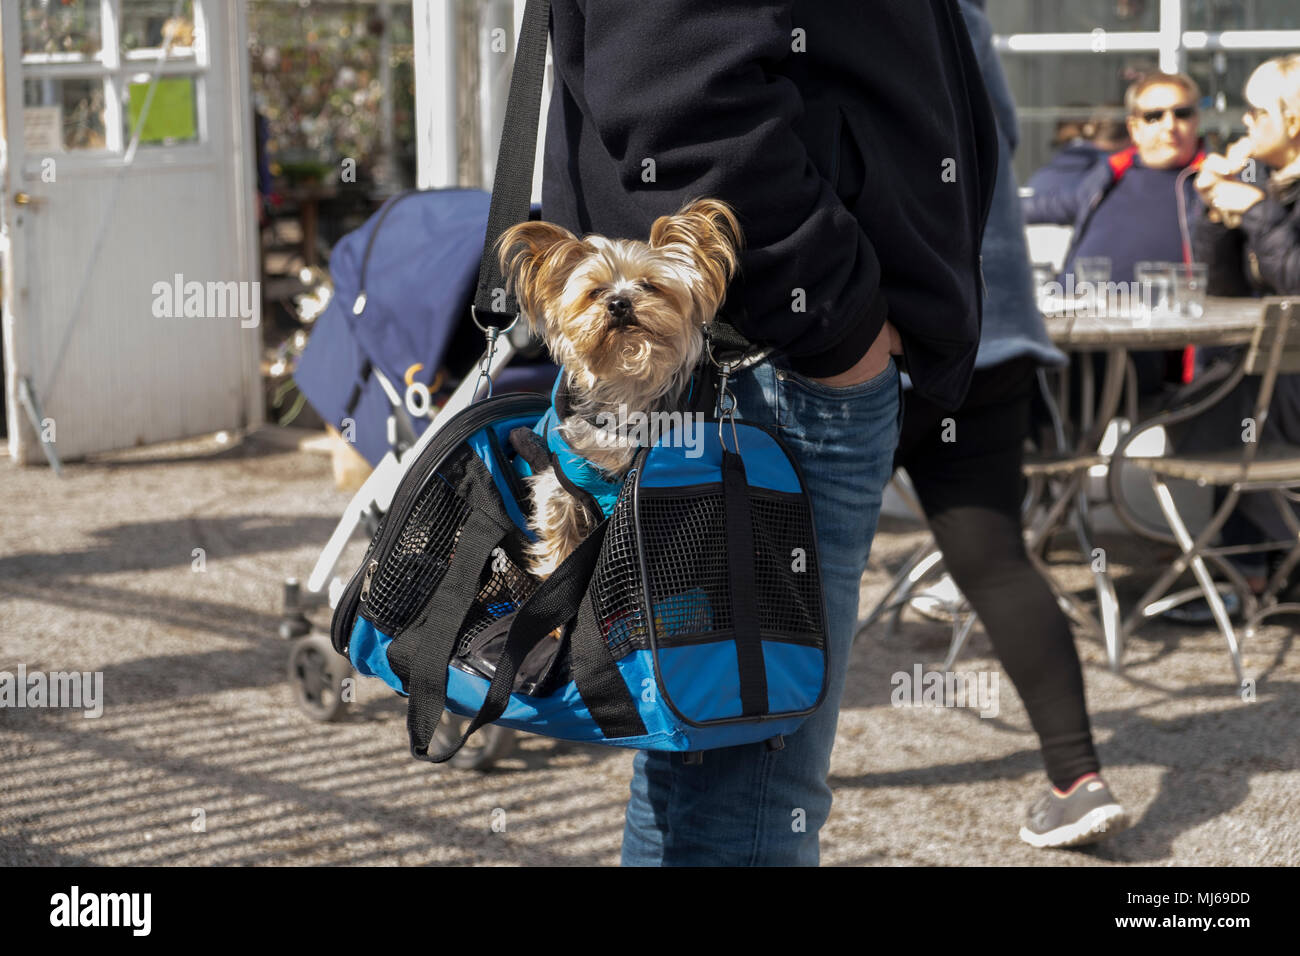 A man with little dog in a bag, Stockholm, Sweden. - Stock Image